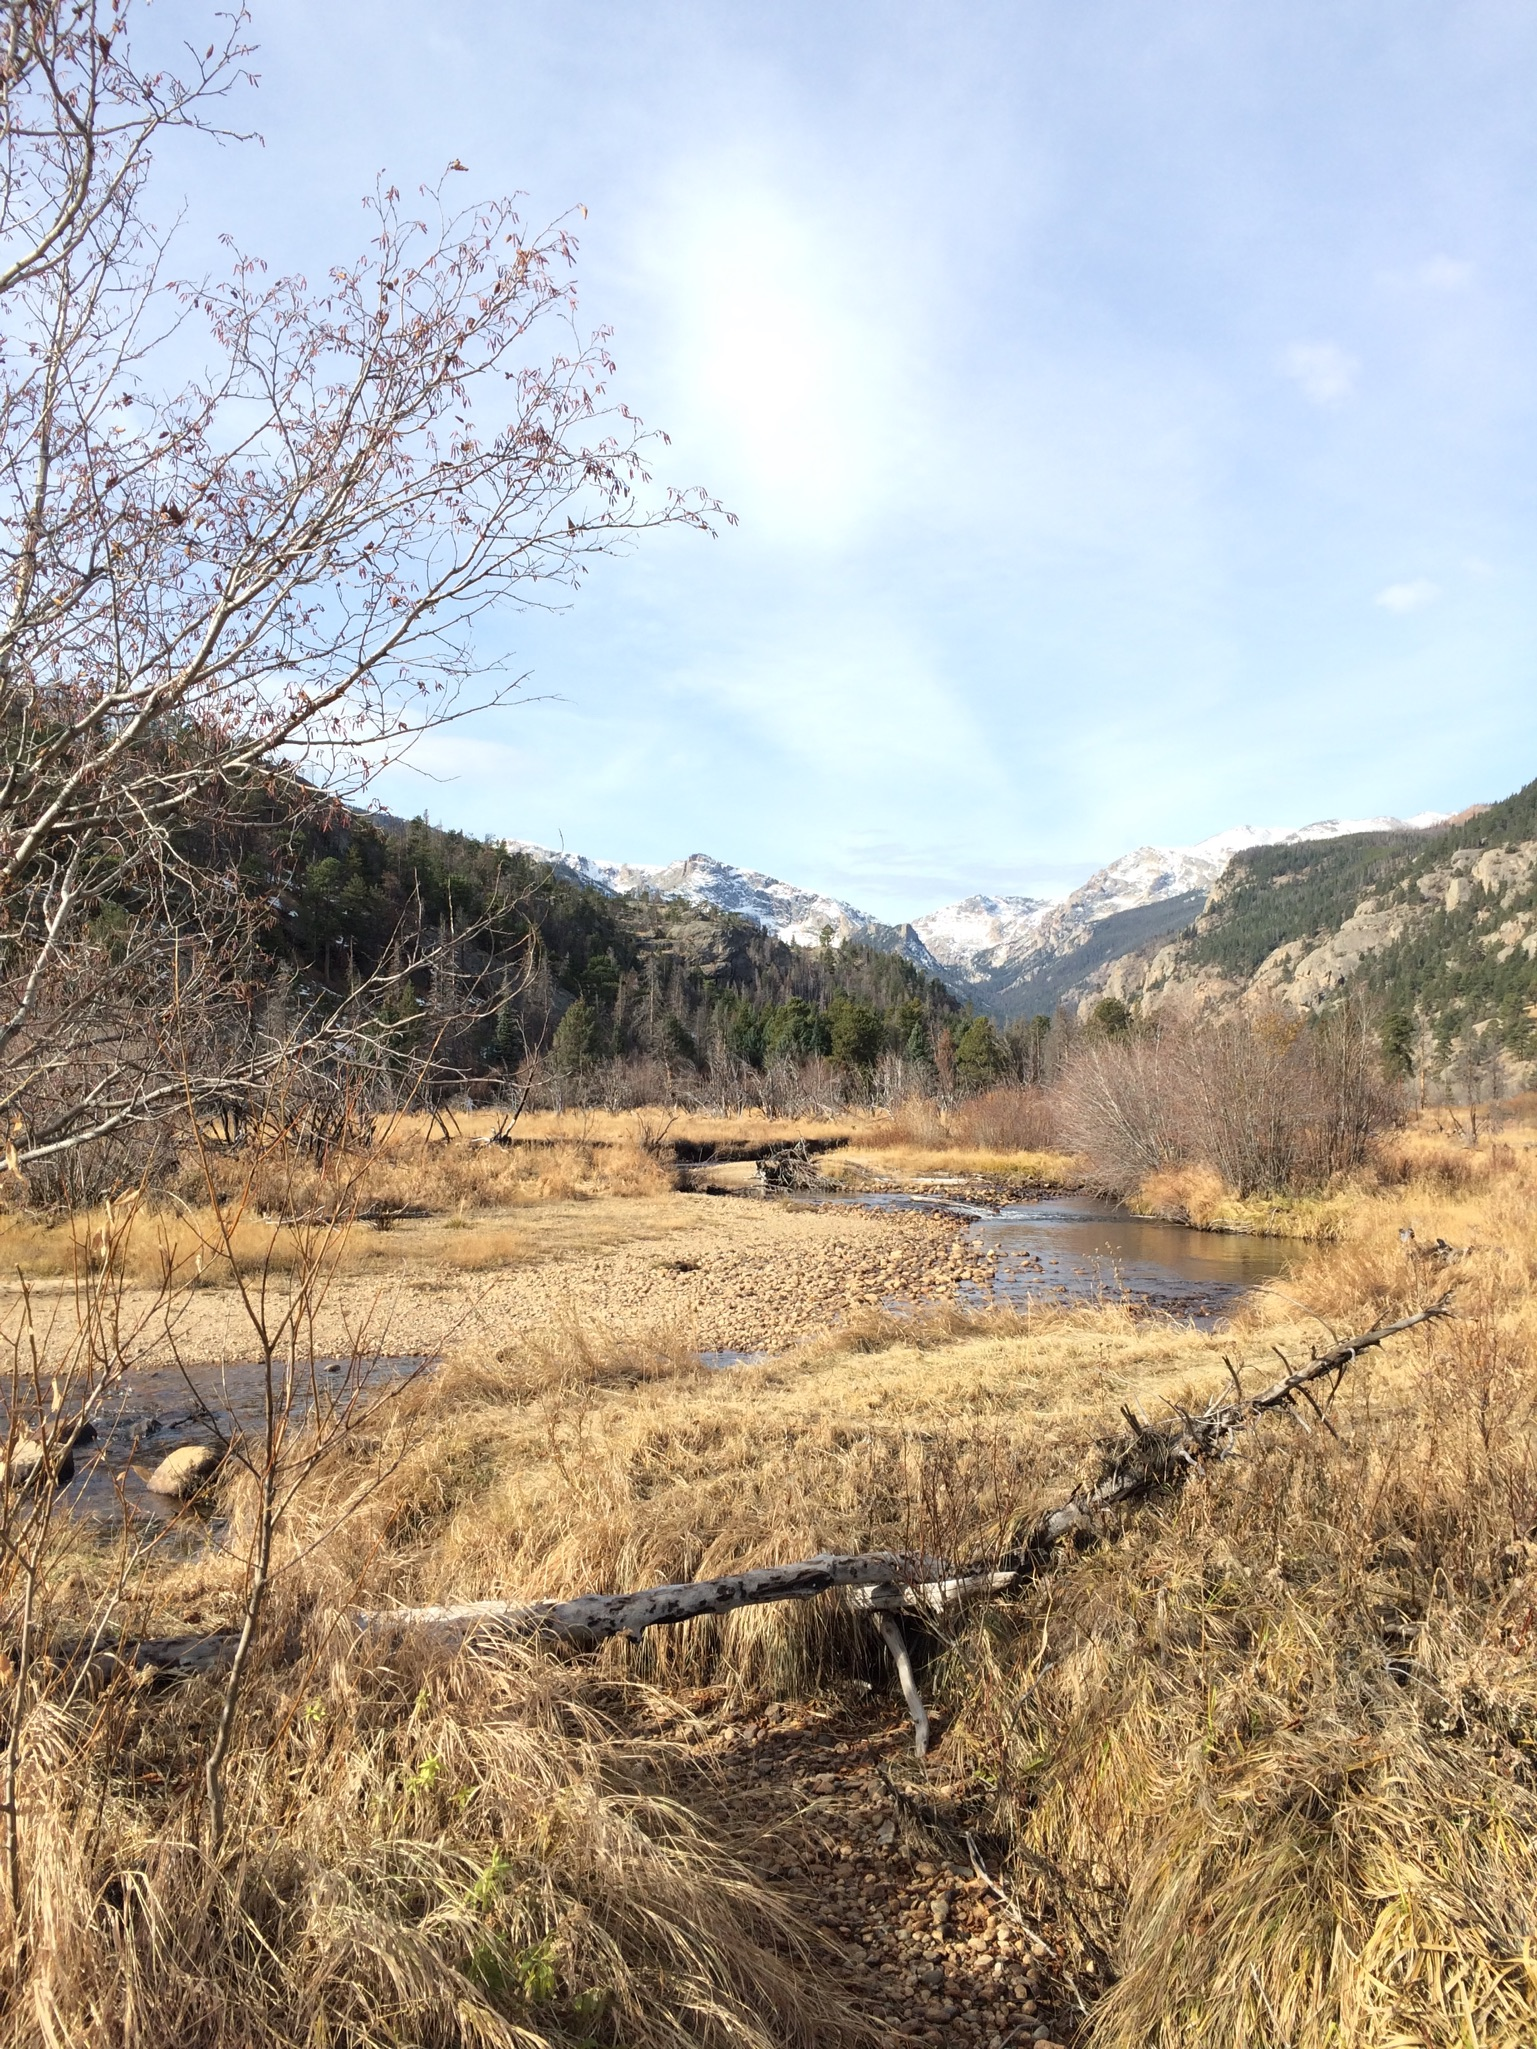 From the trail head we hiked past beaver dams.